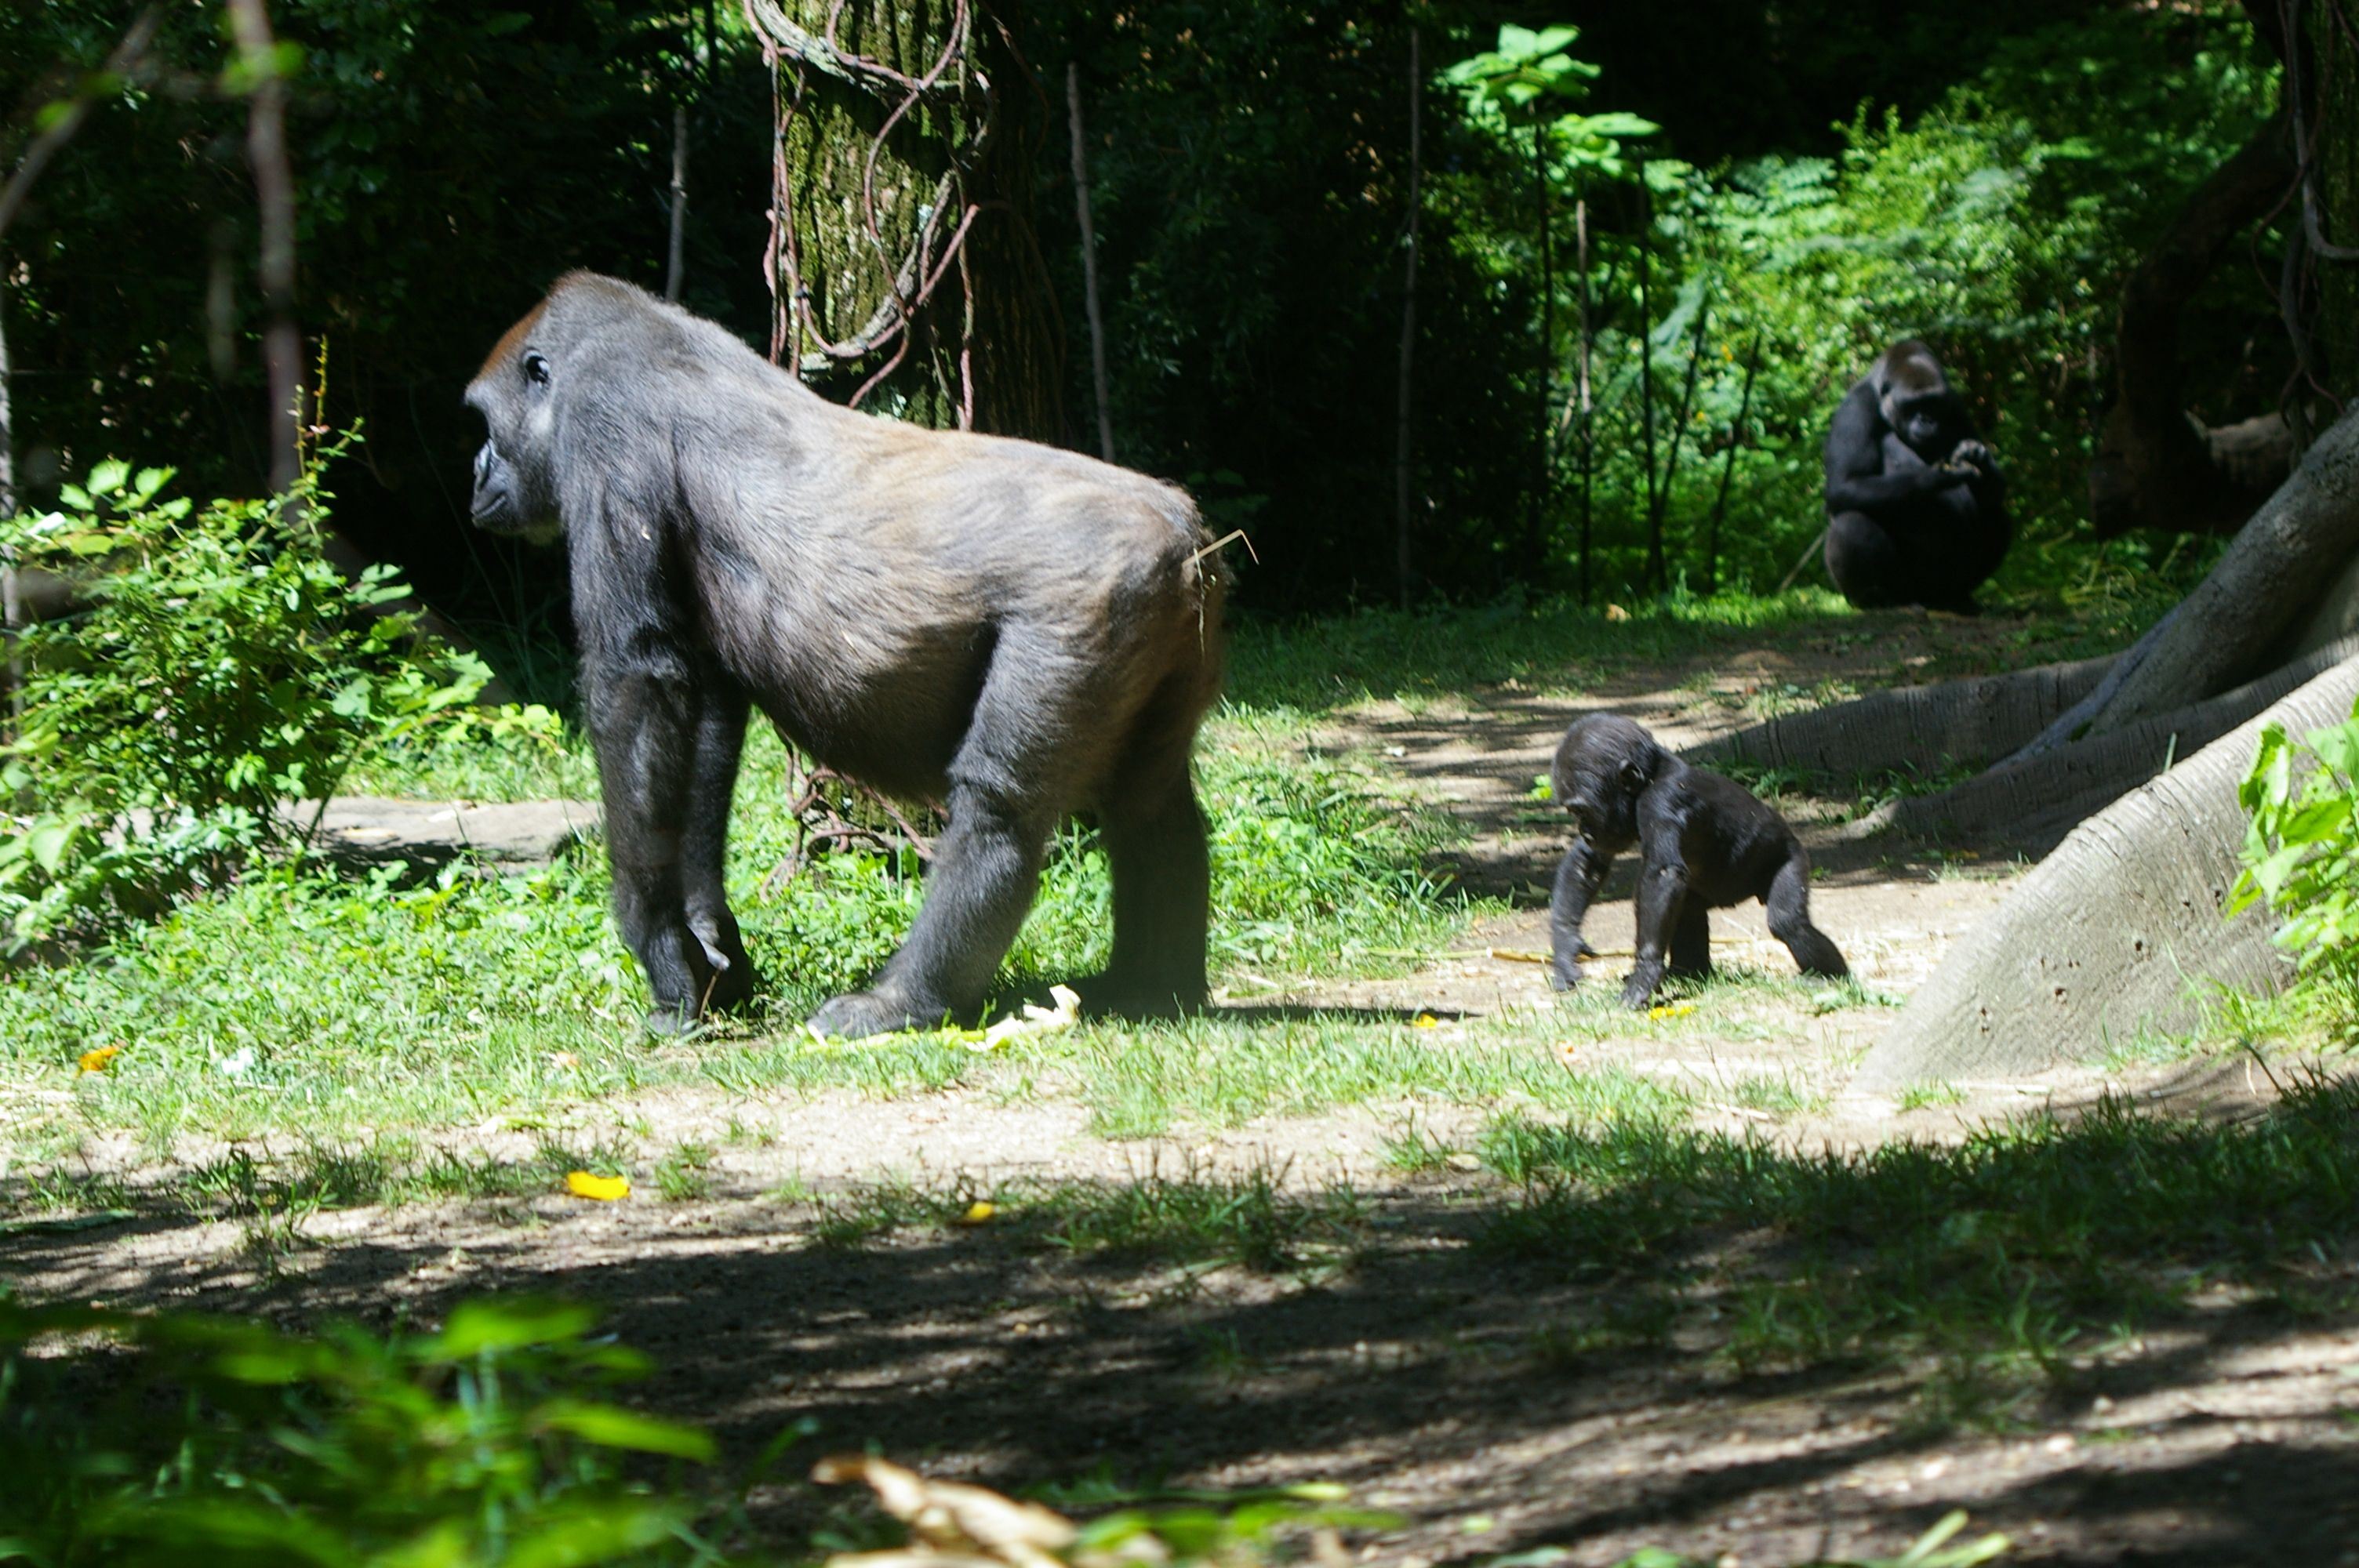 Baby Gorilla keeping up with Mommy!  In Bronx Zoo Congo Gorilla Forest